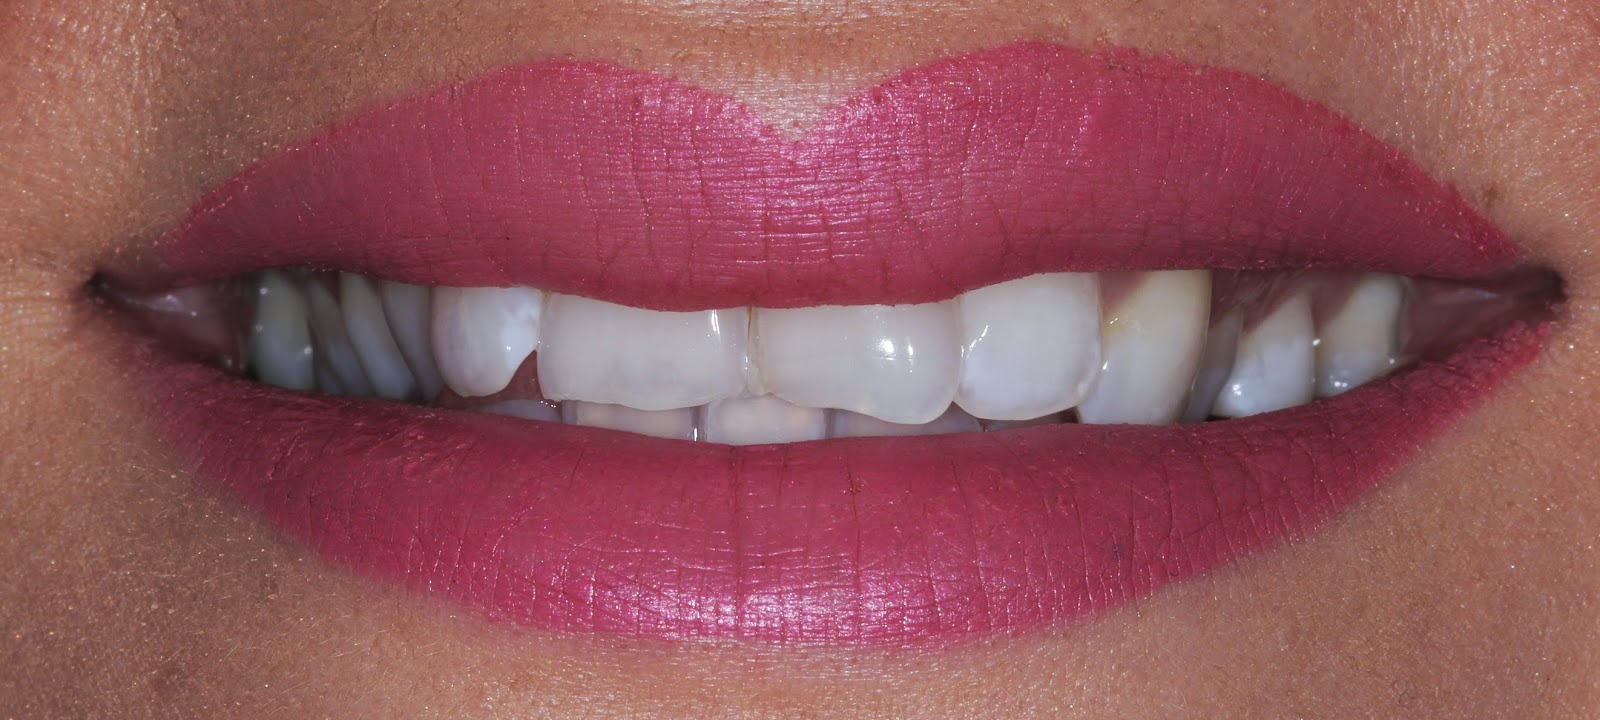 Teeth After Whitening